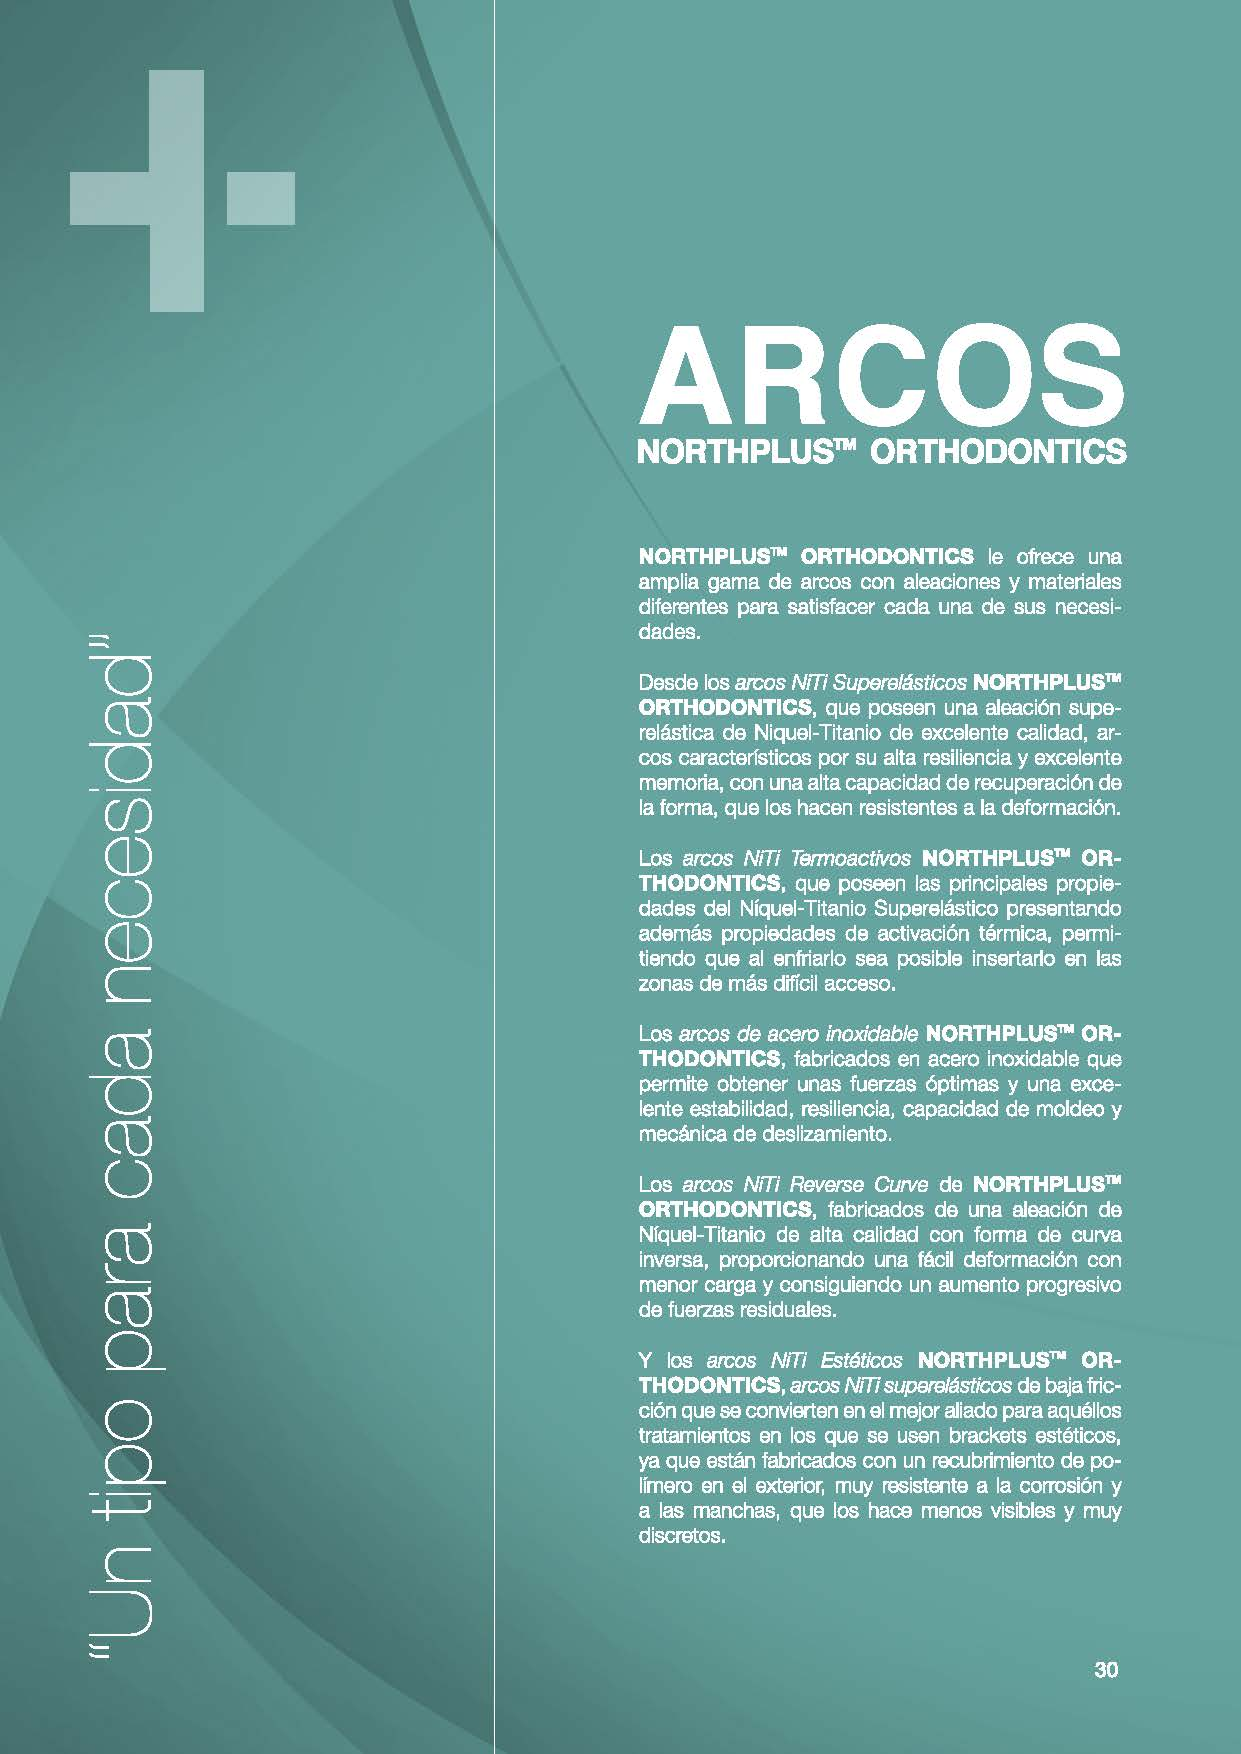 ARCOS NORTHPLUS ORTHODONTICS